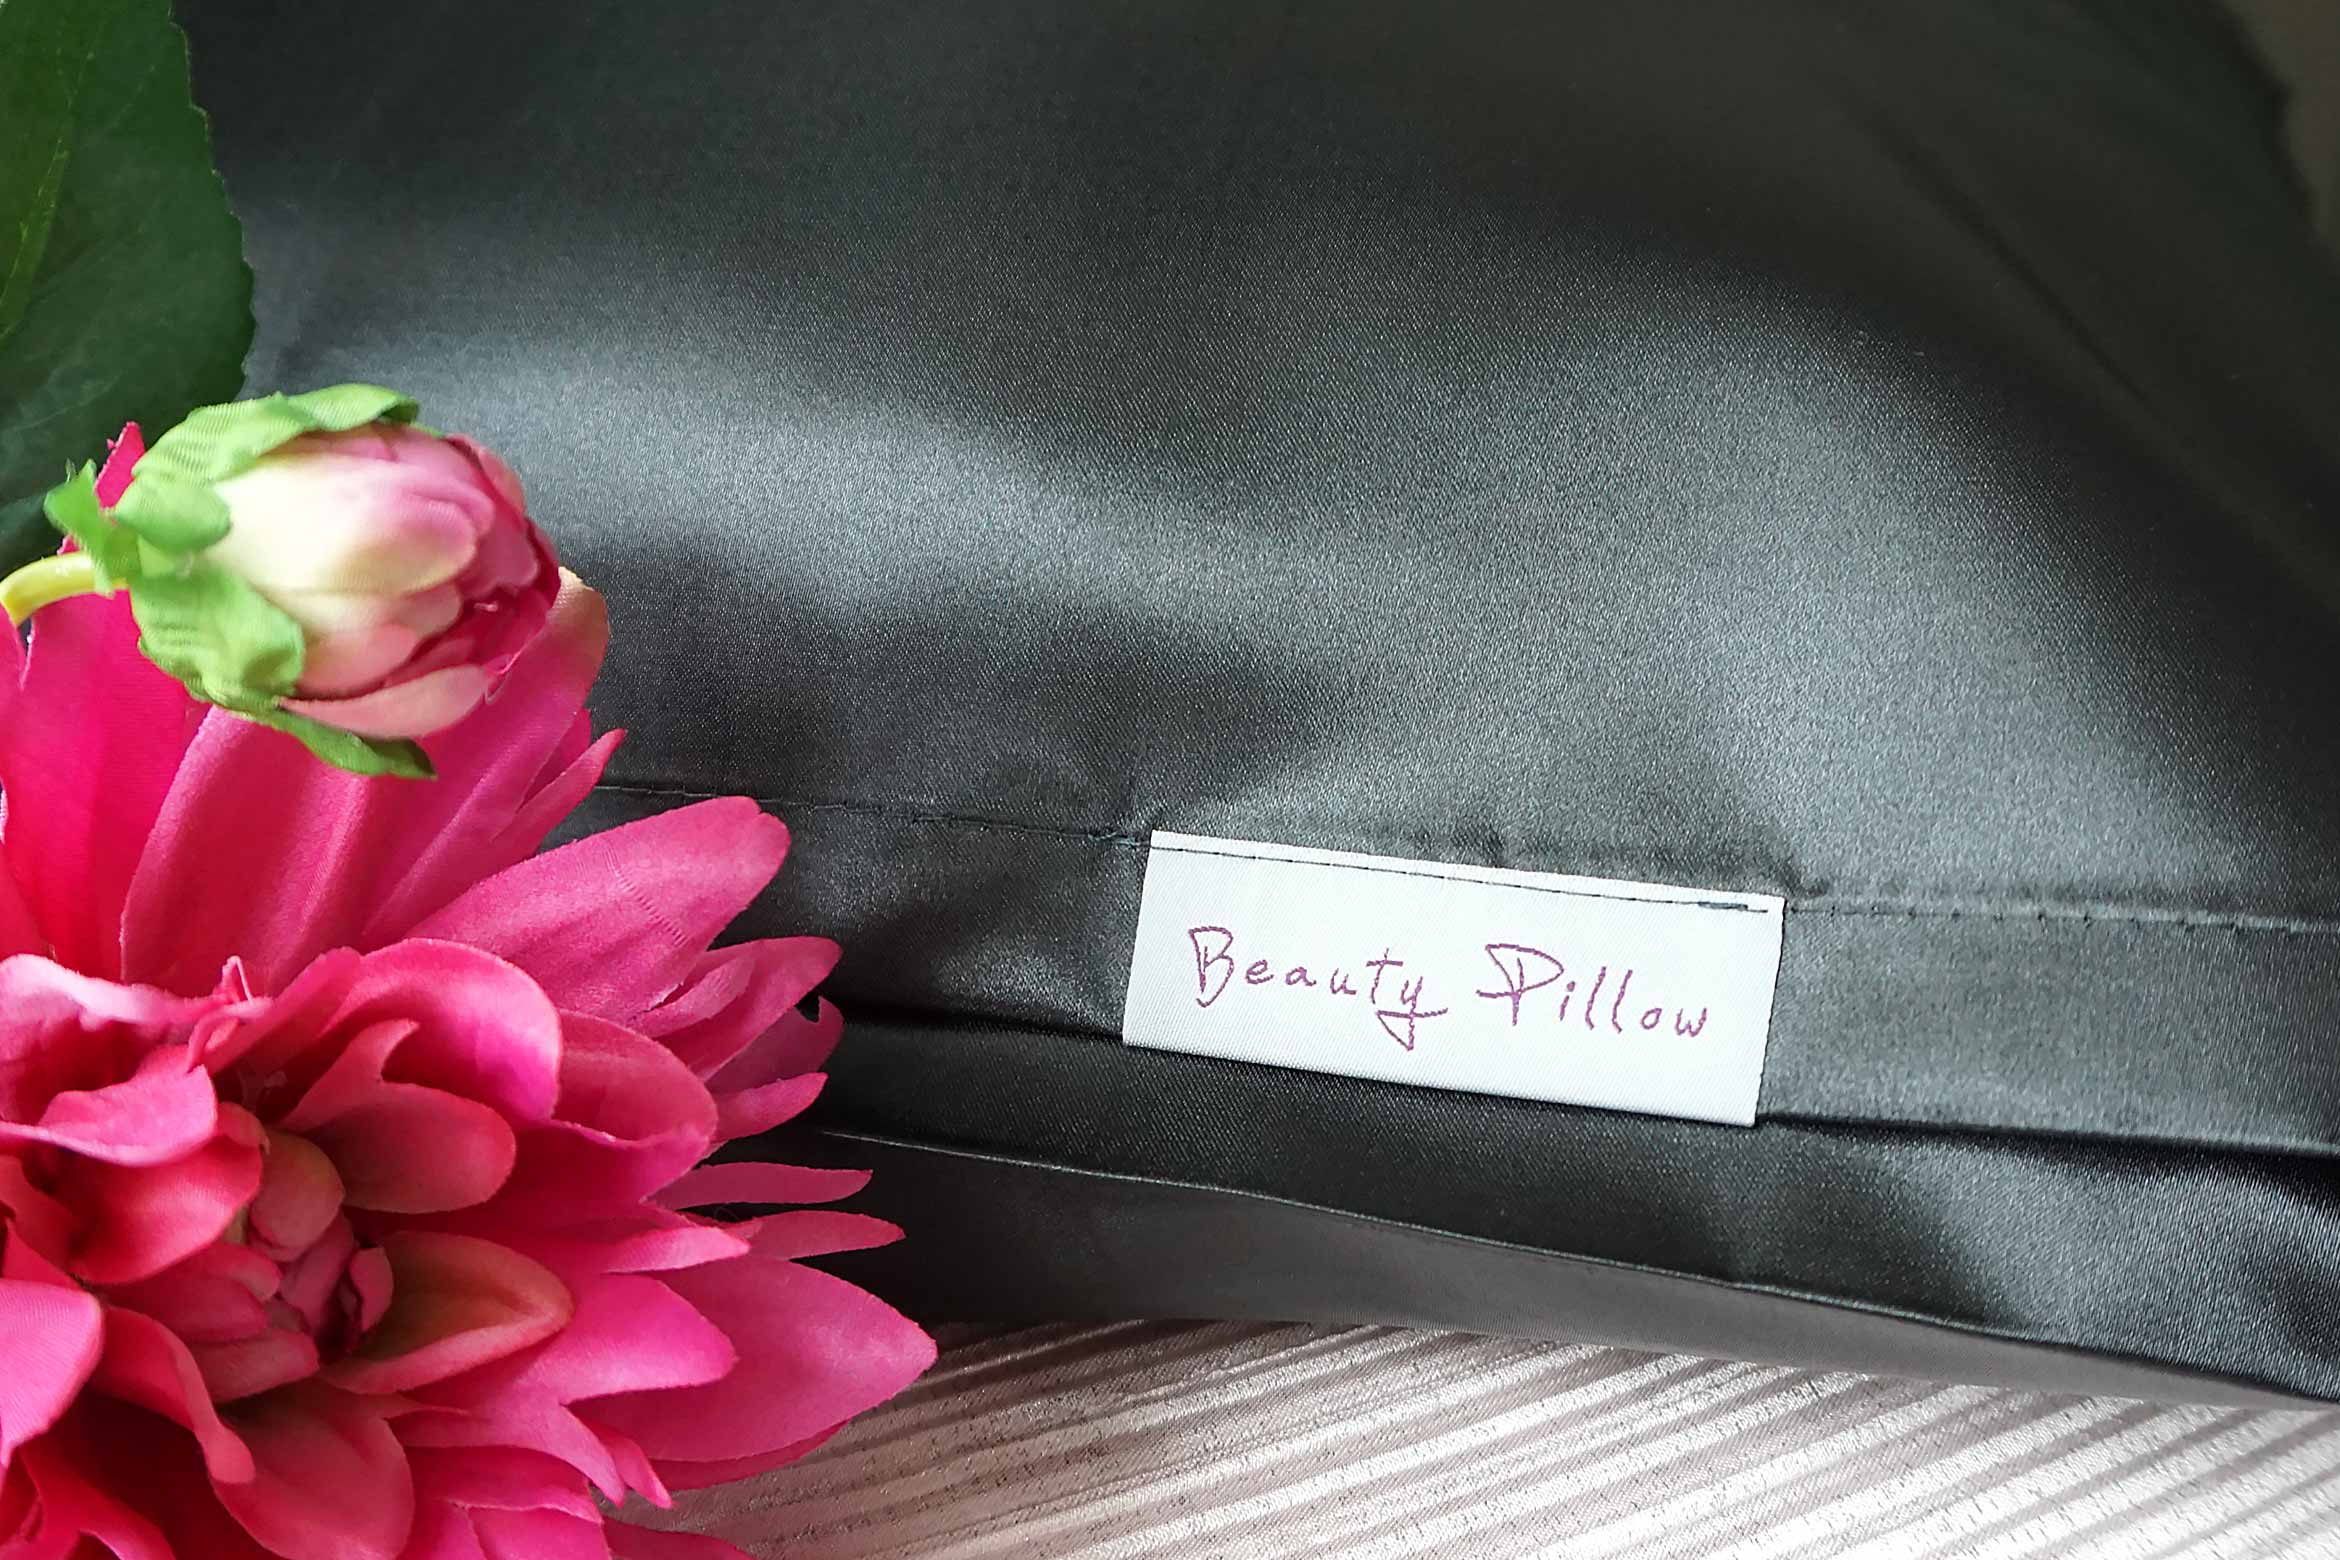 beauty-pillow-review-2